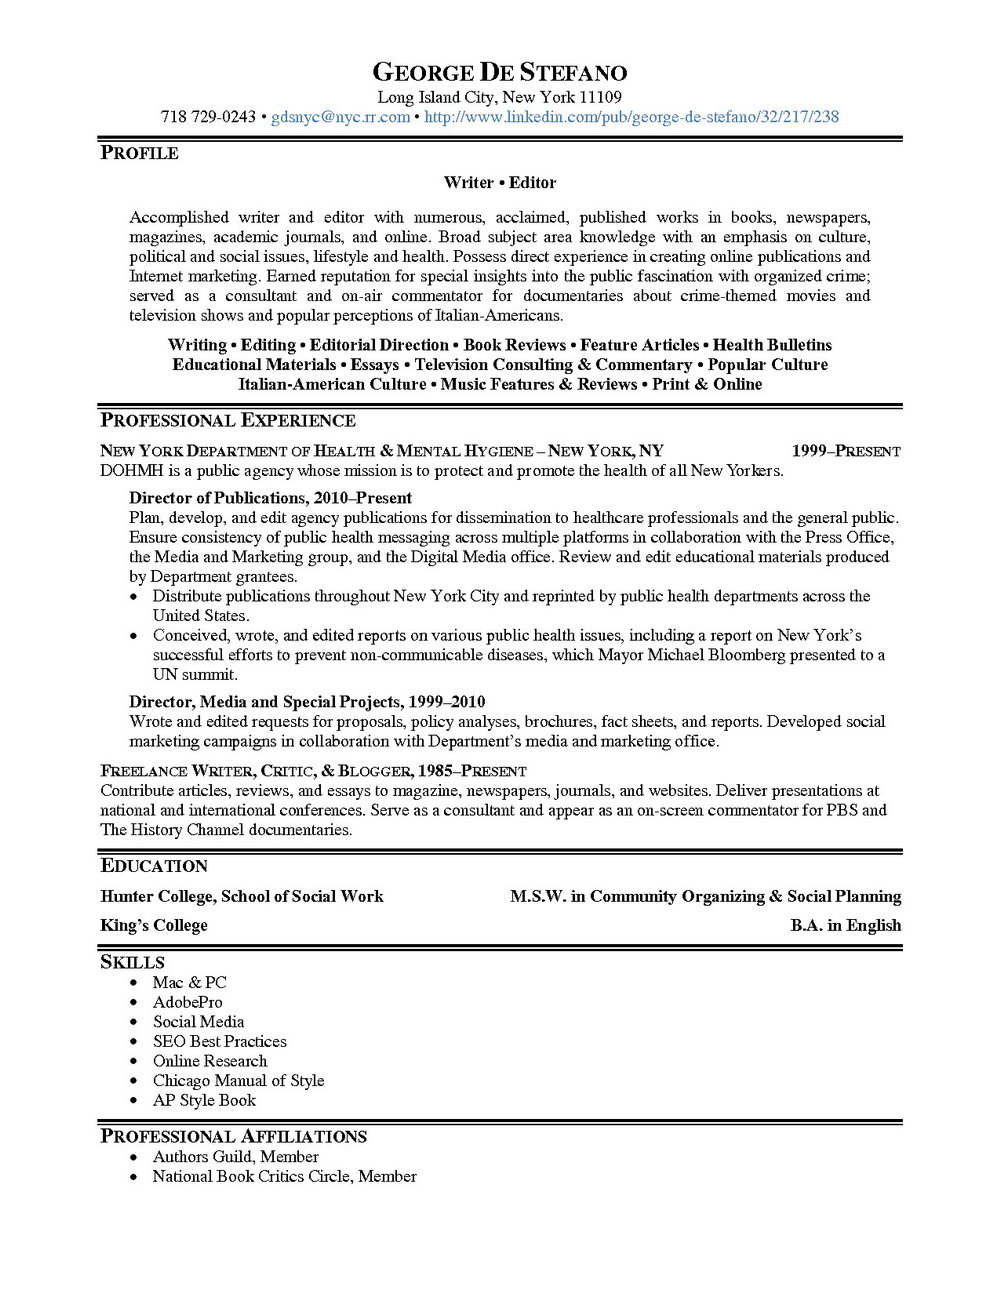 professional resume writers jacksonville nc